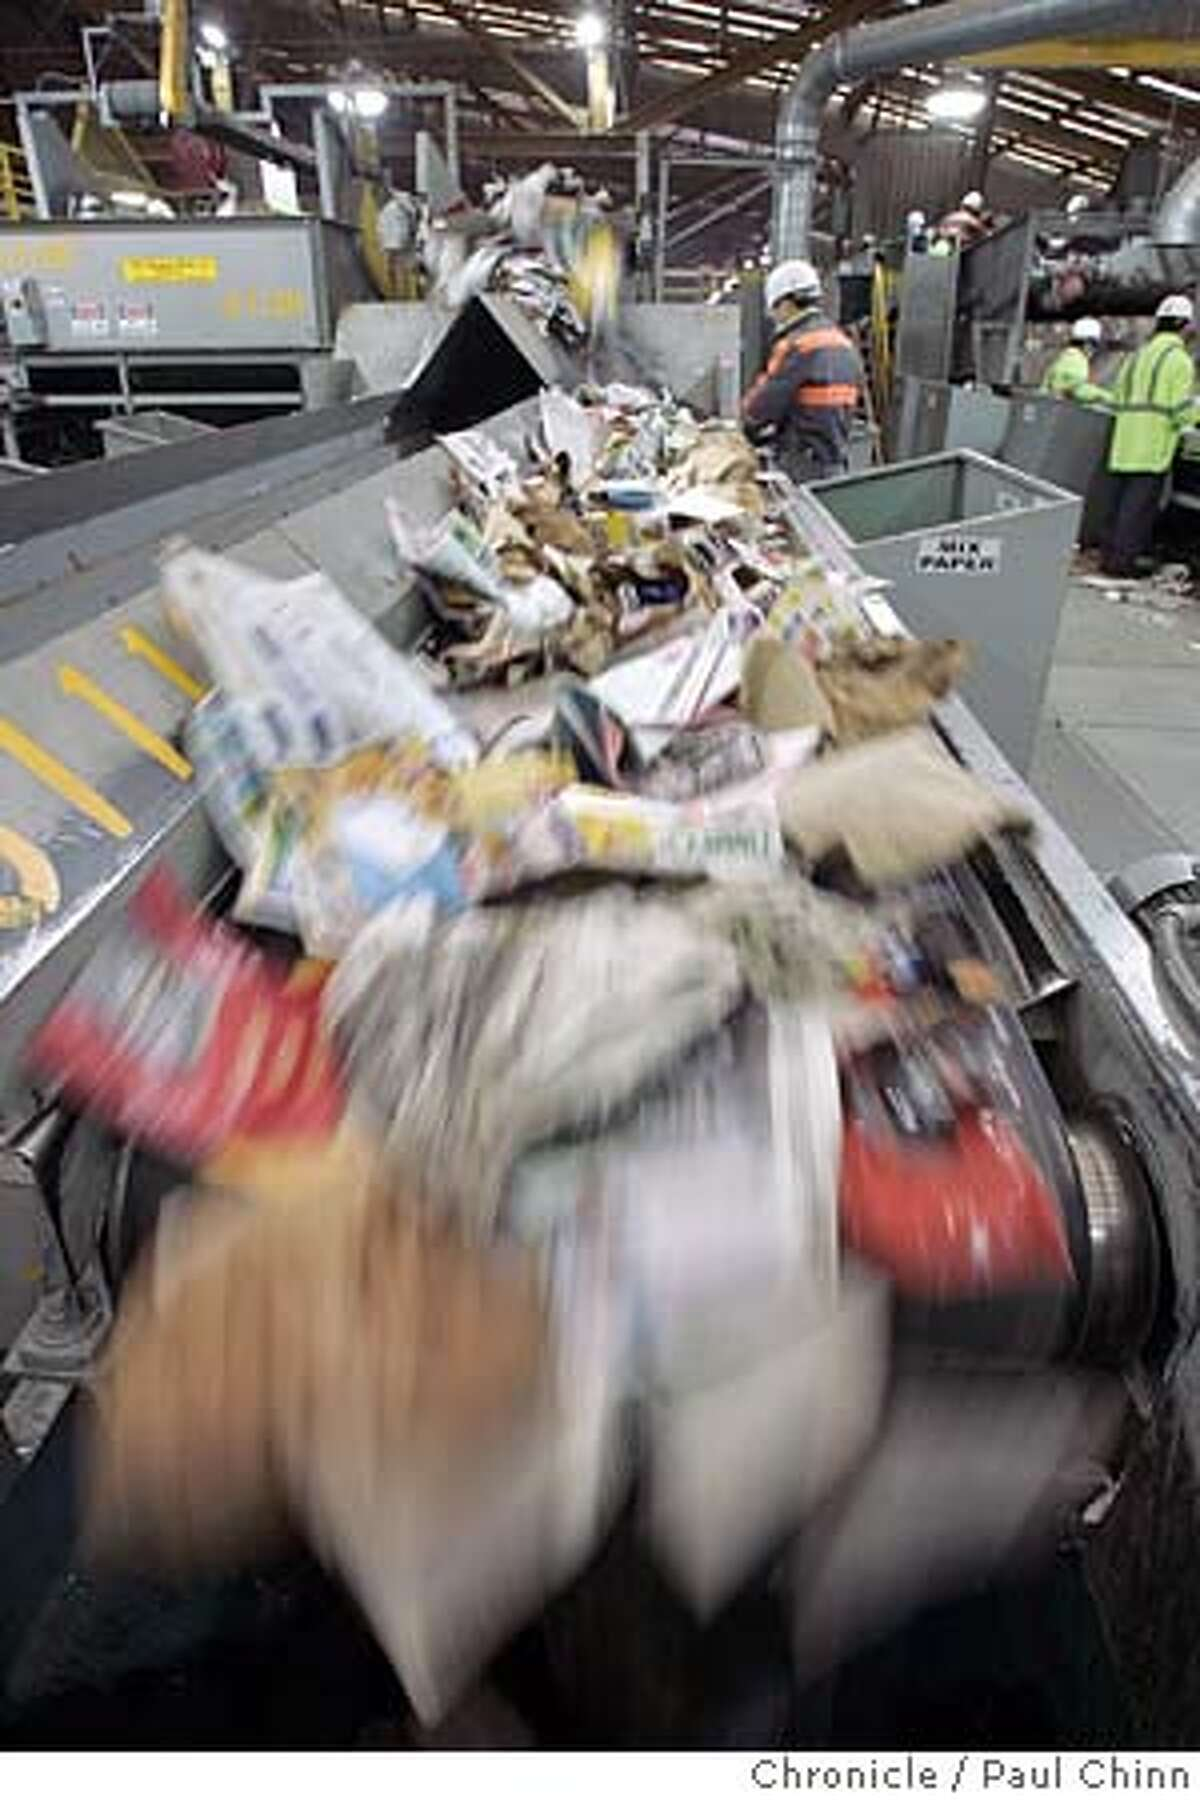 recycle31_048_pc.jpg Paper products of all types tumble through a sorting machine before it's wrapped into large bundles. The Sunset Scavenger recycling transfer station on 12/30/04 in San Francisco, CA. Over the ten day period after Christmas, Sunset Scavenger will process an additional 750 tons of recycling material. PAUL CHINN/The Chronicle MANDATORY CREDIT FOR PHOTOG AND S.F. CHRONICLE/ - MAGS OUT